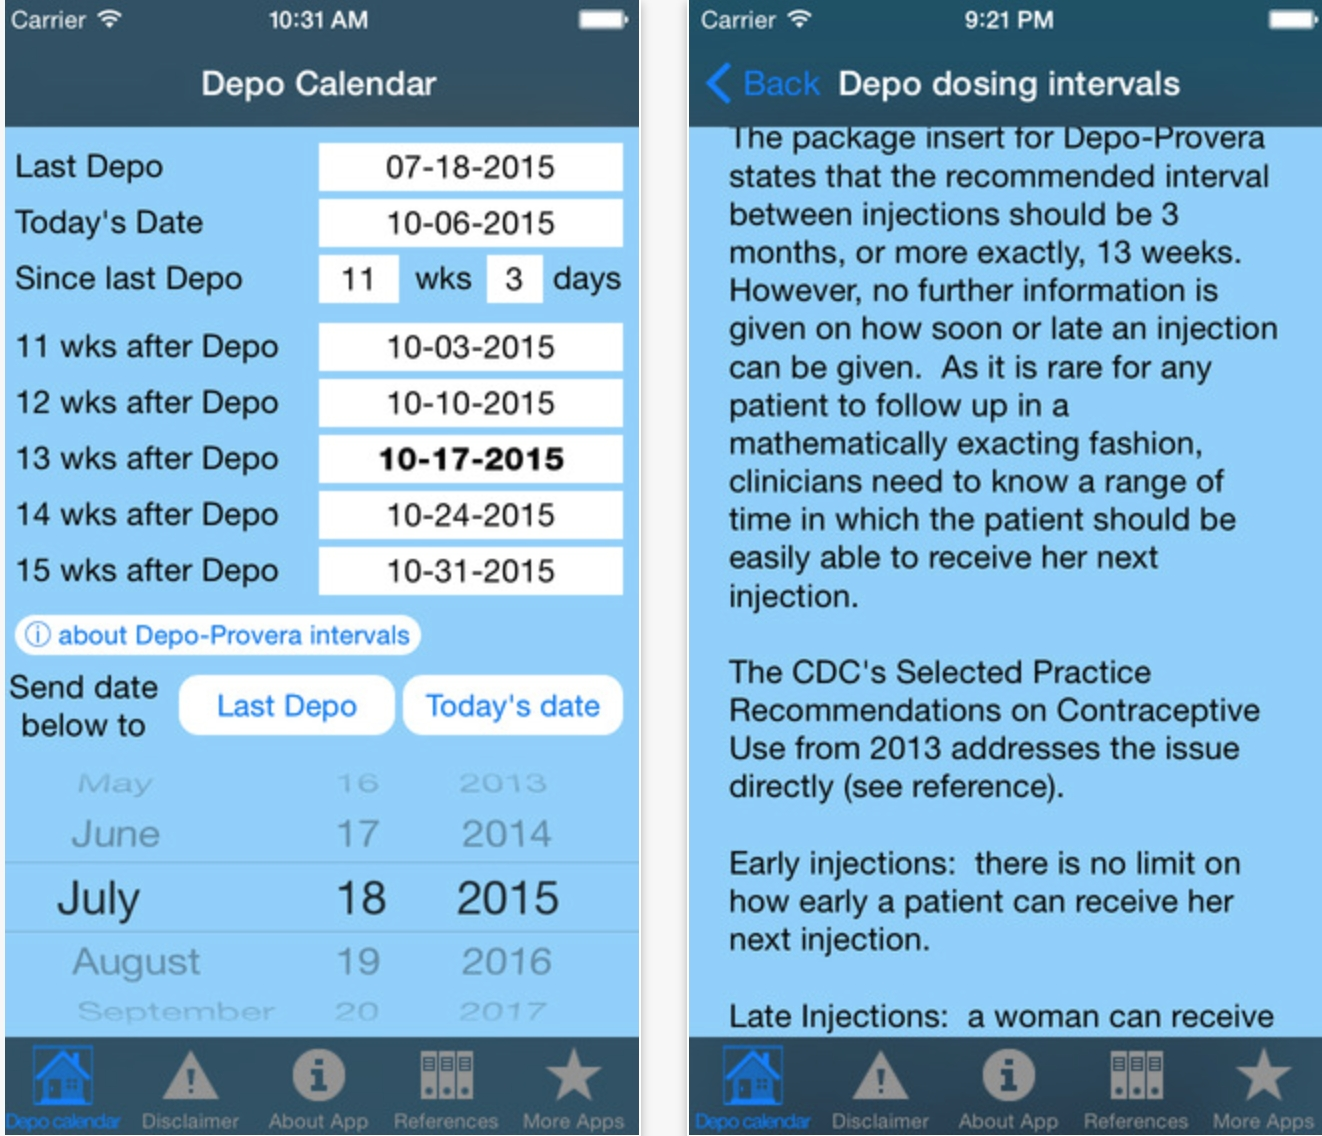 Depo Calendar App Could Significantly Improve Contraception  Depo Provera Injections Scheduling